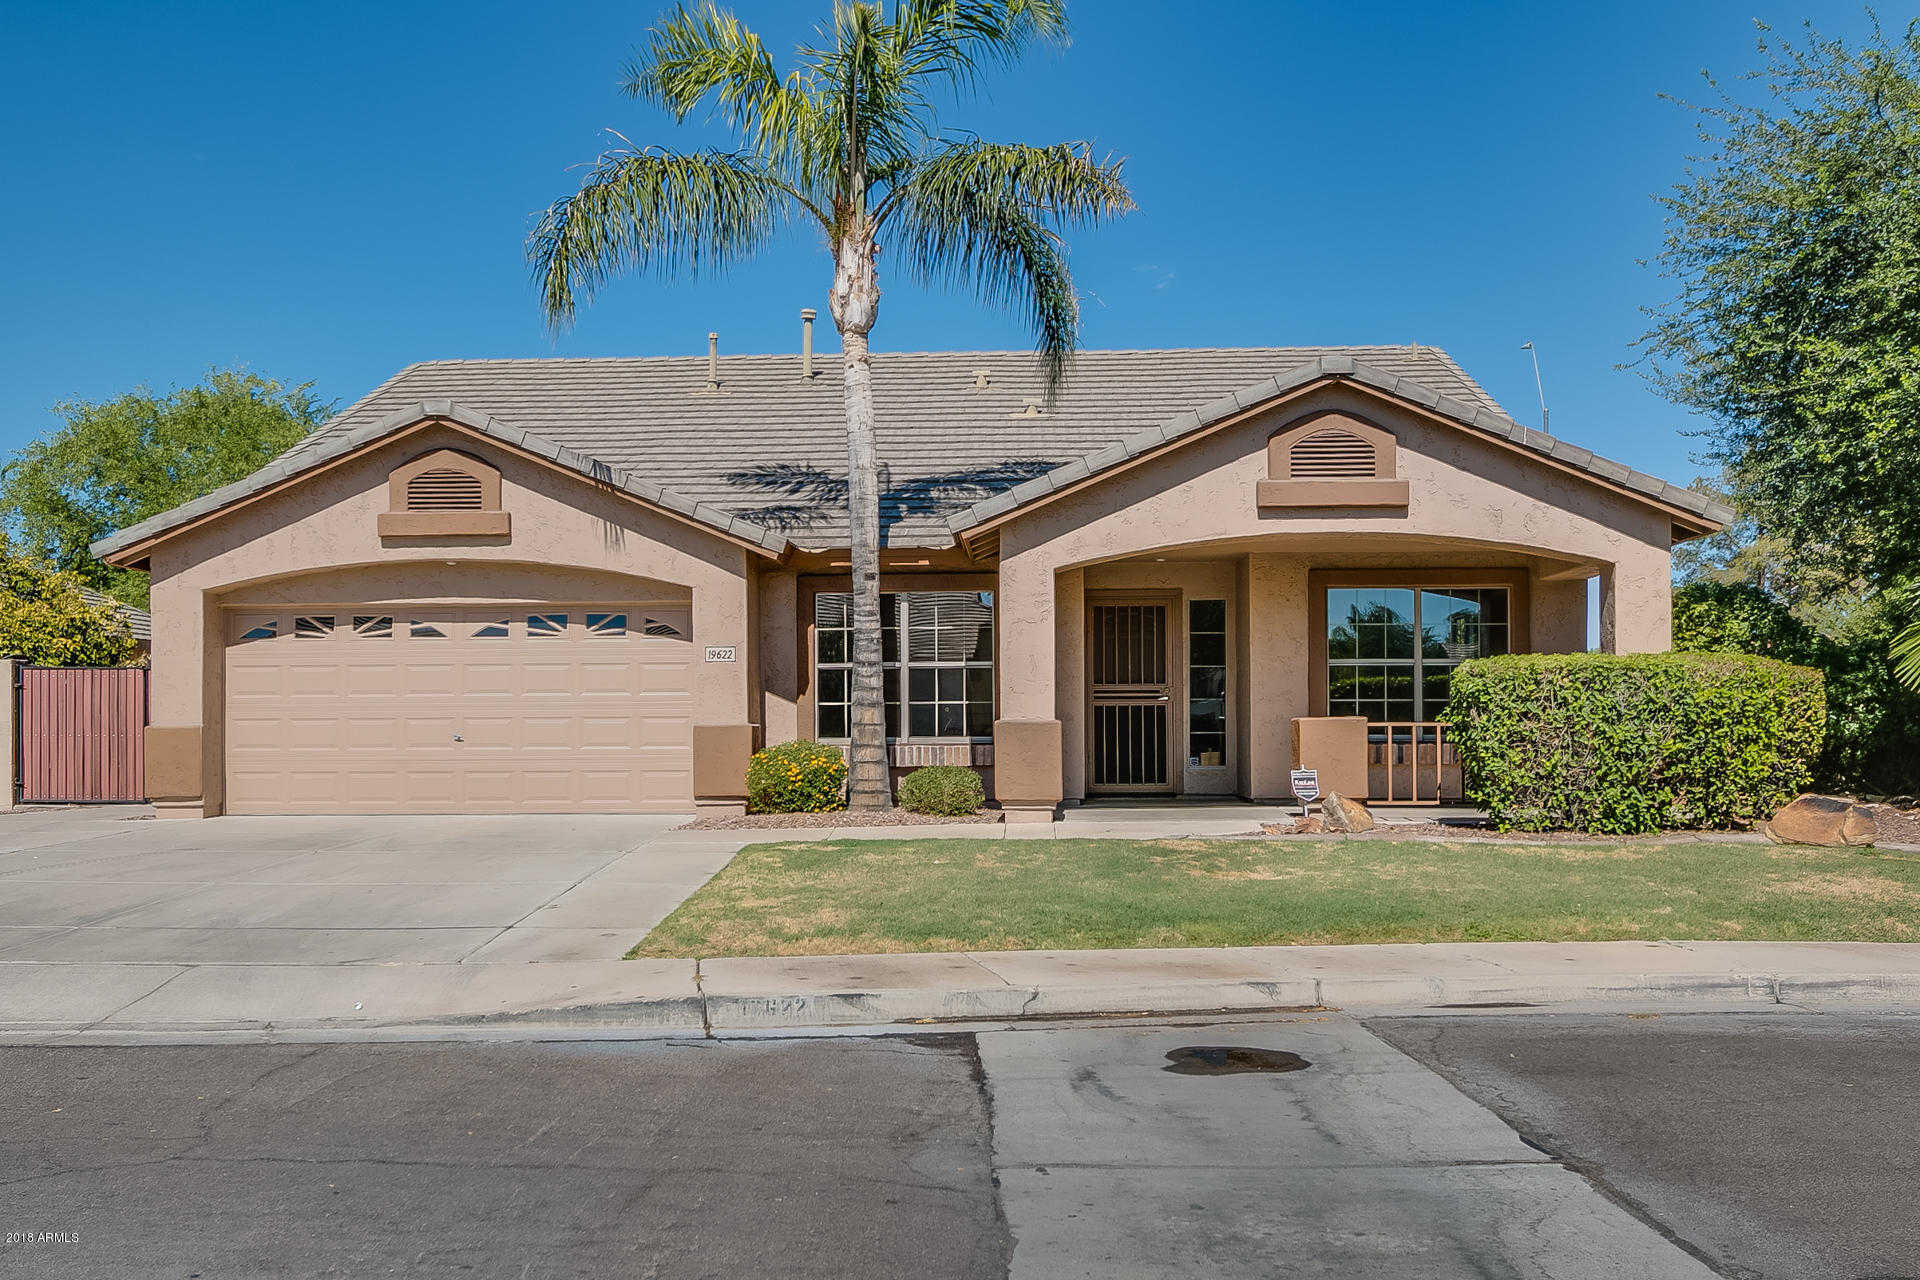 $347,000 - 4Br/2Ba - Home for Sale in Highlands At Arrowhead Ranch 1, Glendale